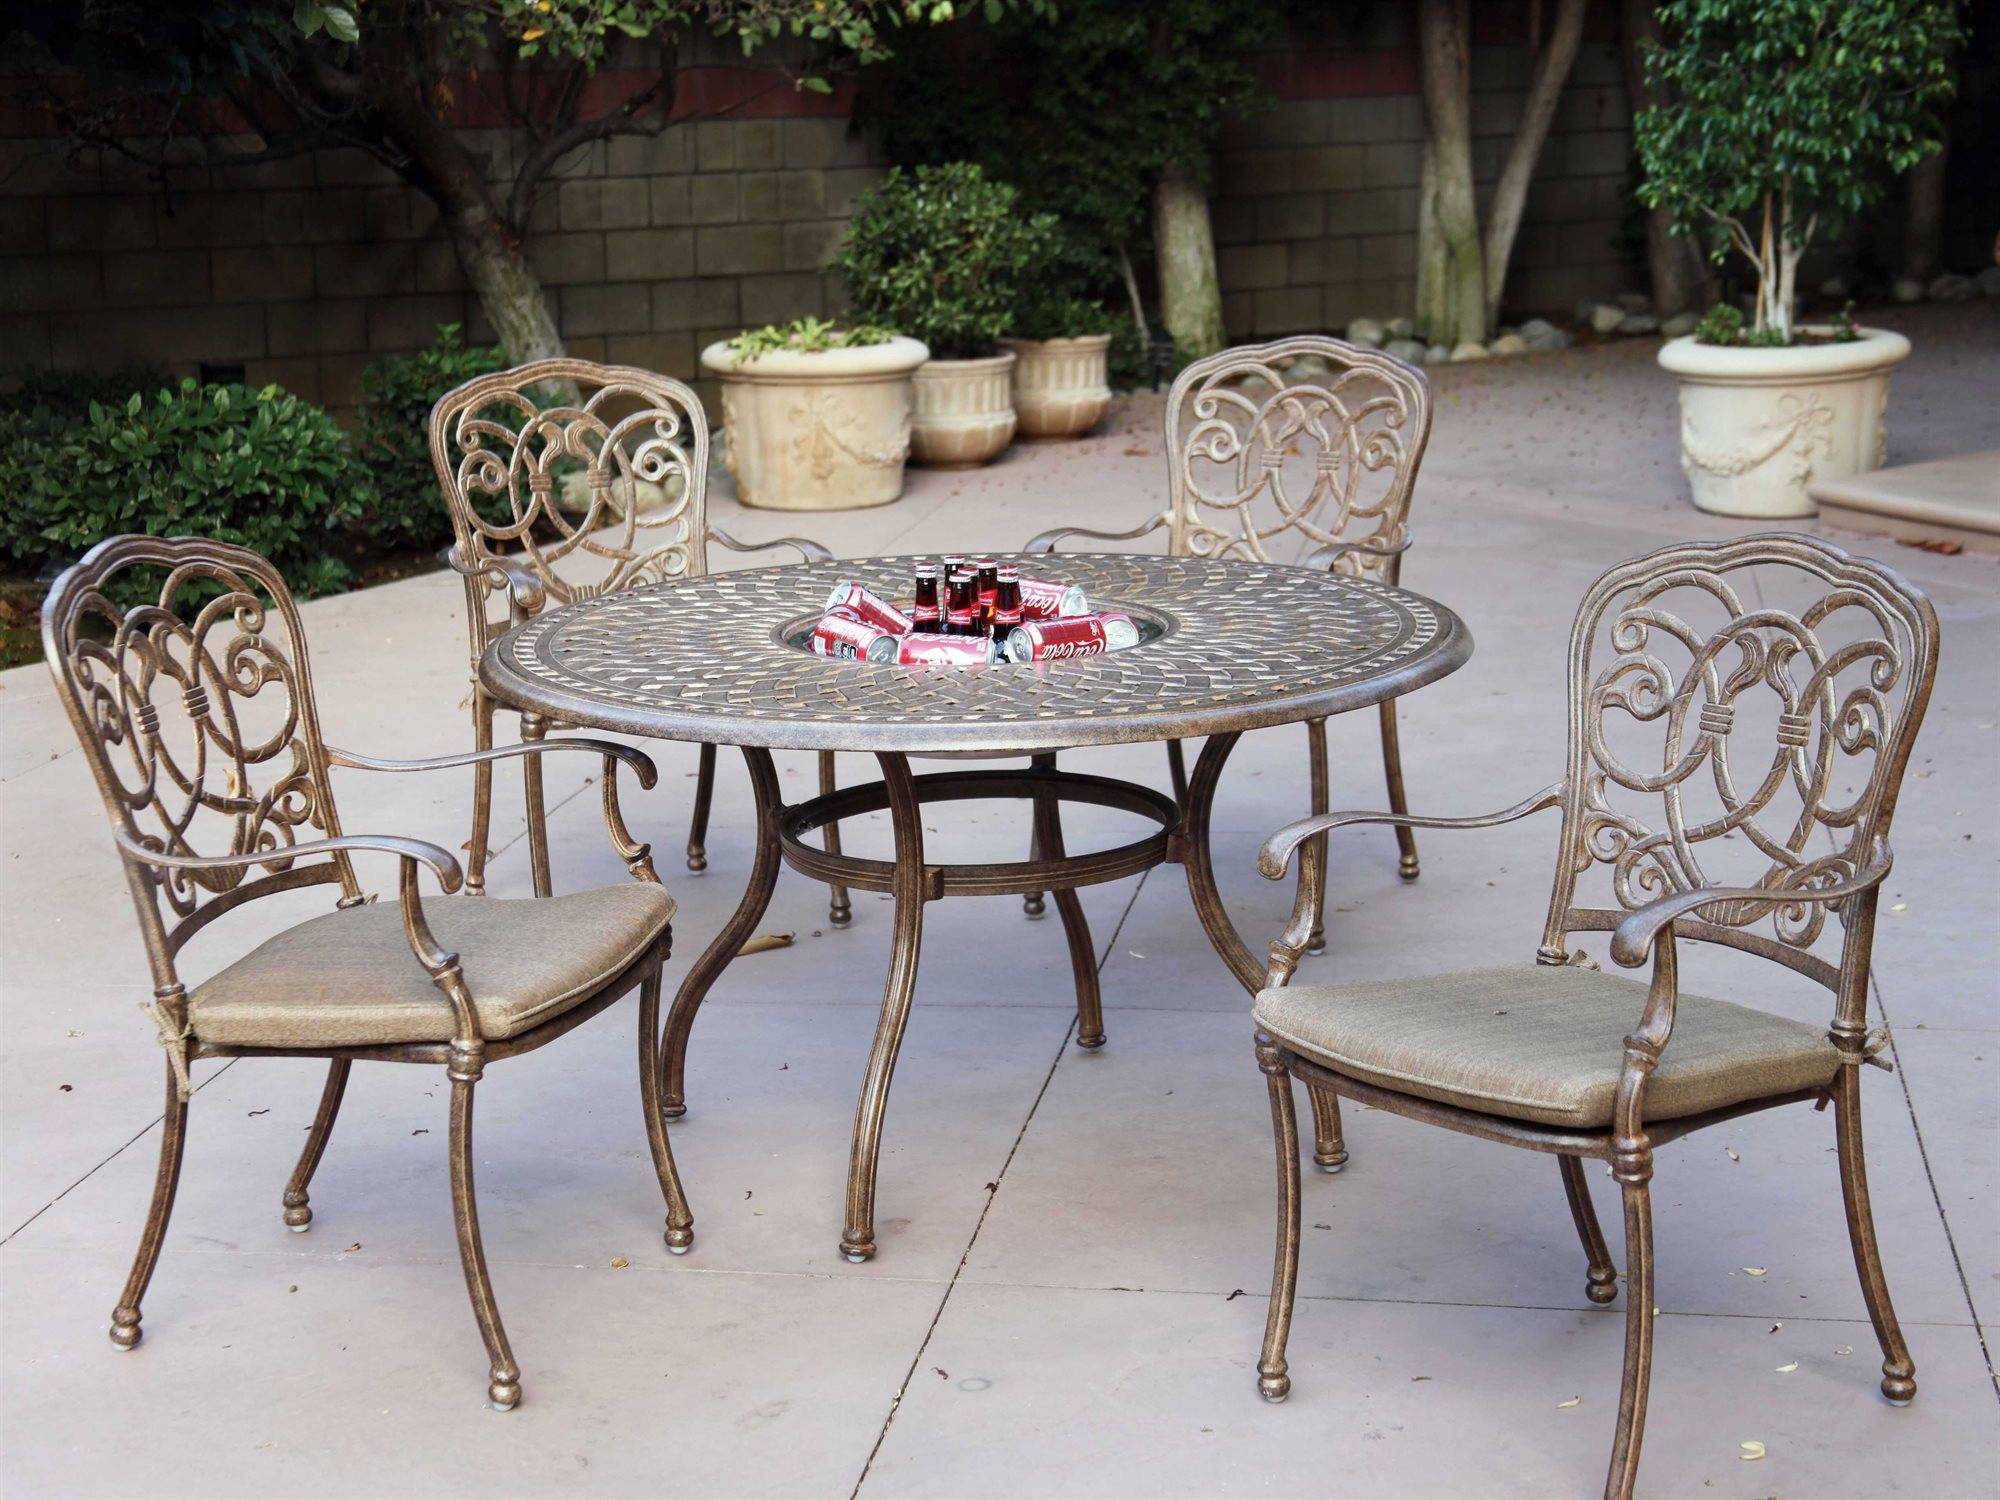 Round Dining Table 52 Inch: Darlee Outdoor Living Series 60 Cast Aluminum 52 Round